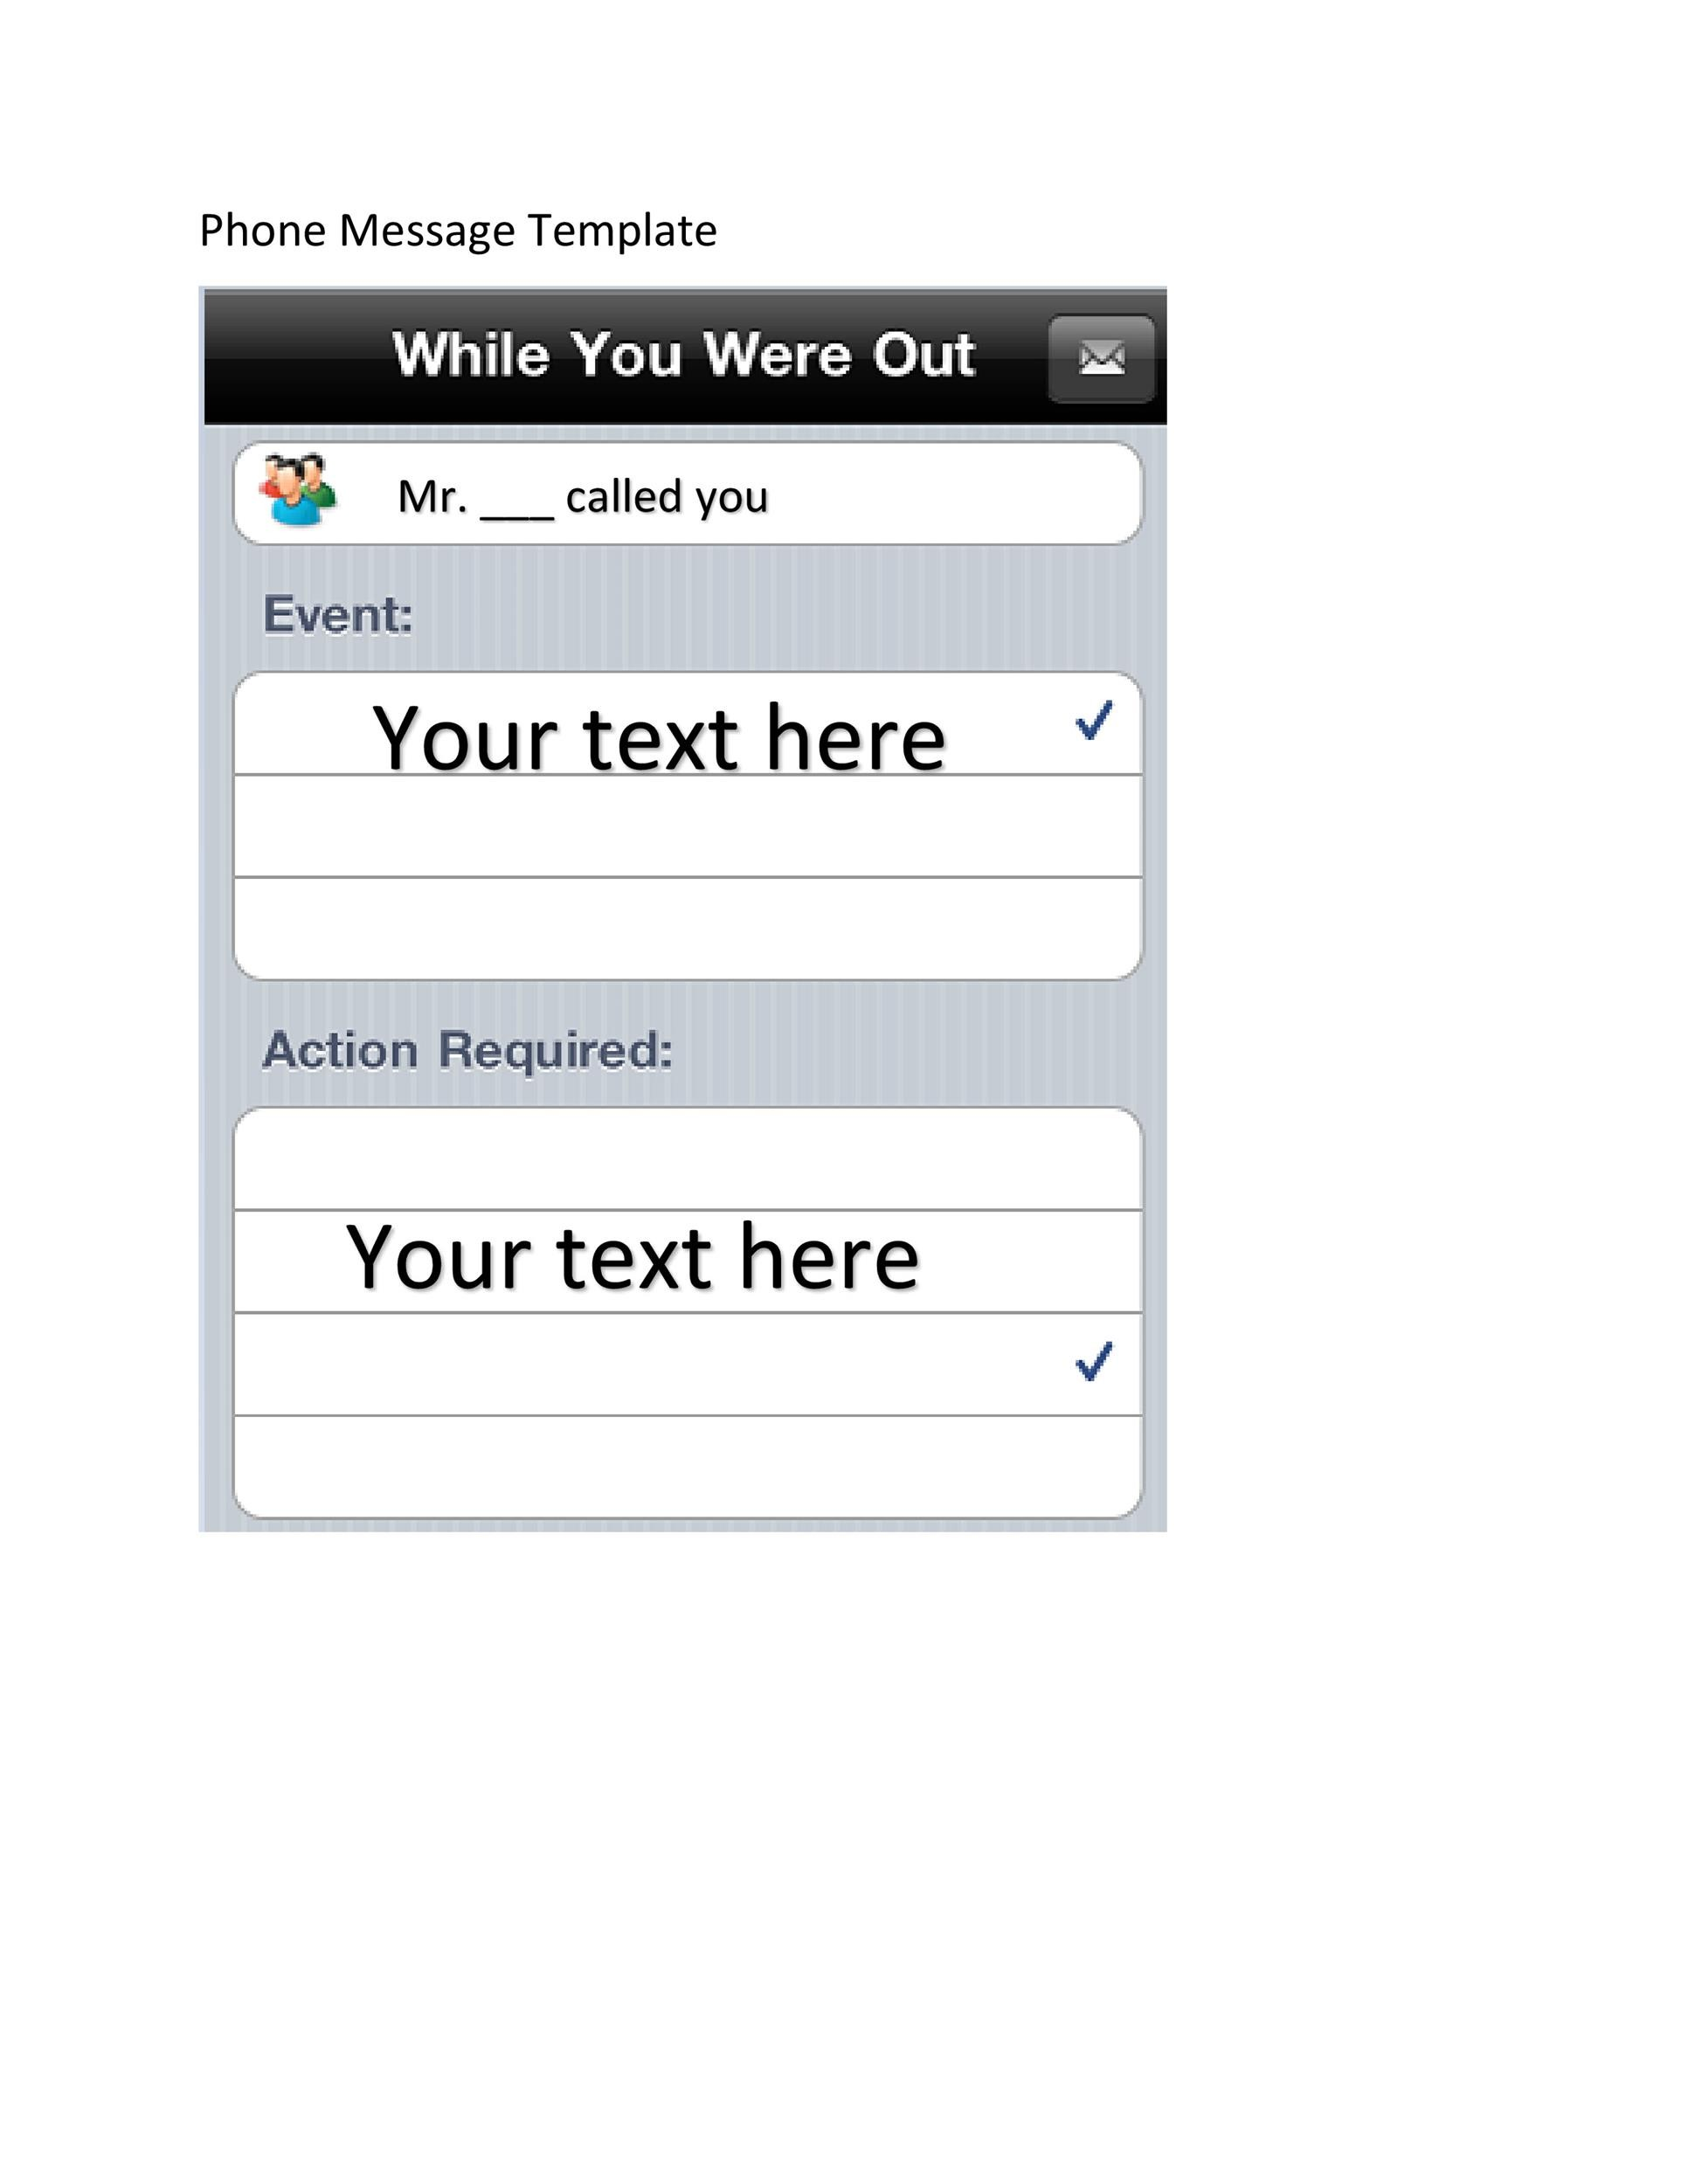 Free phone message template 21